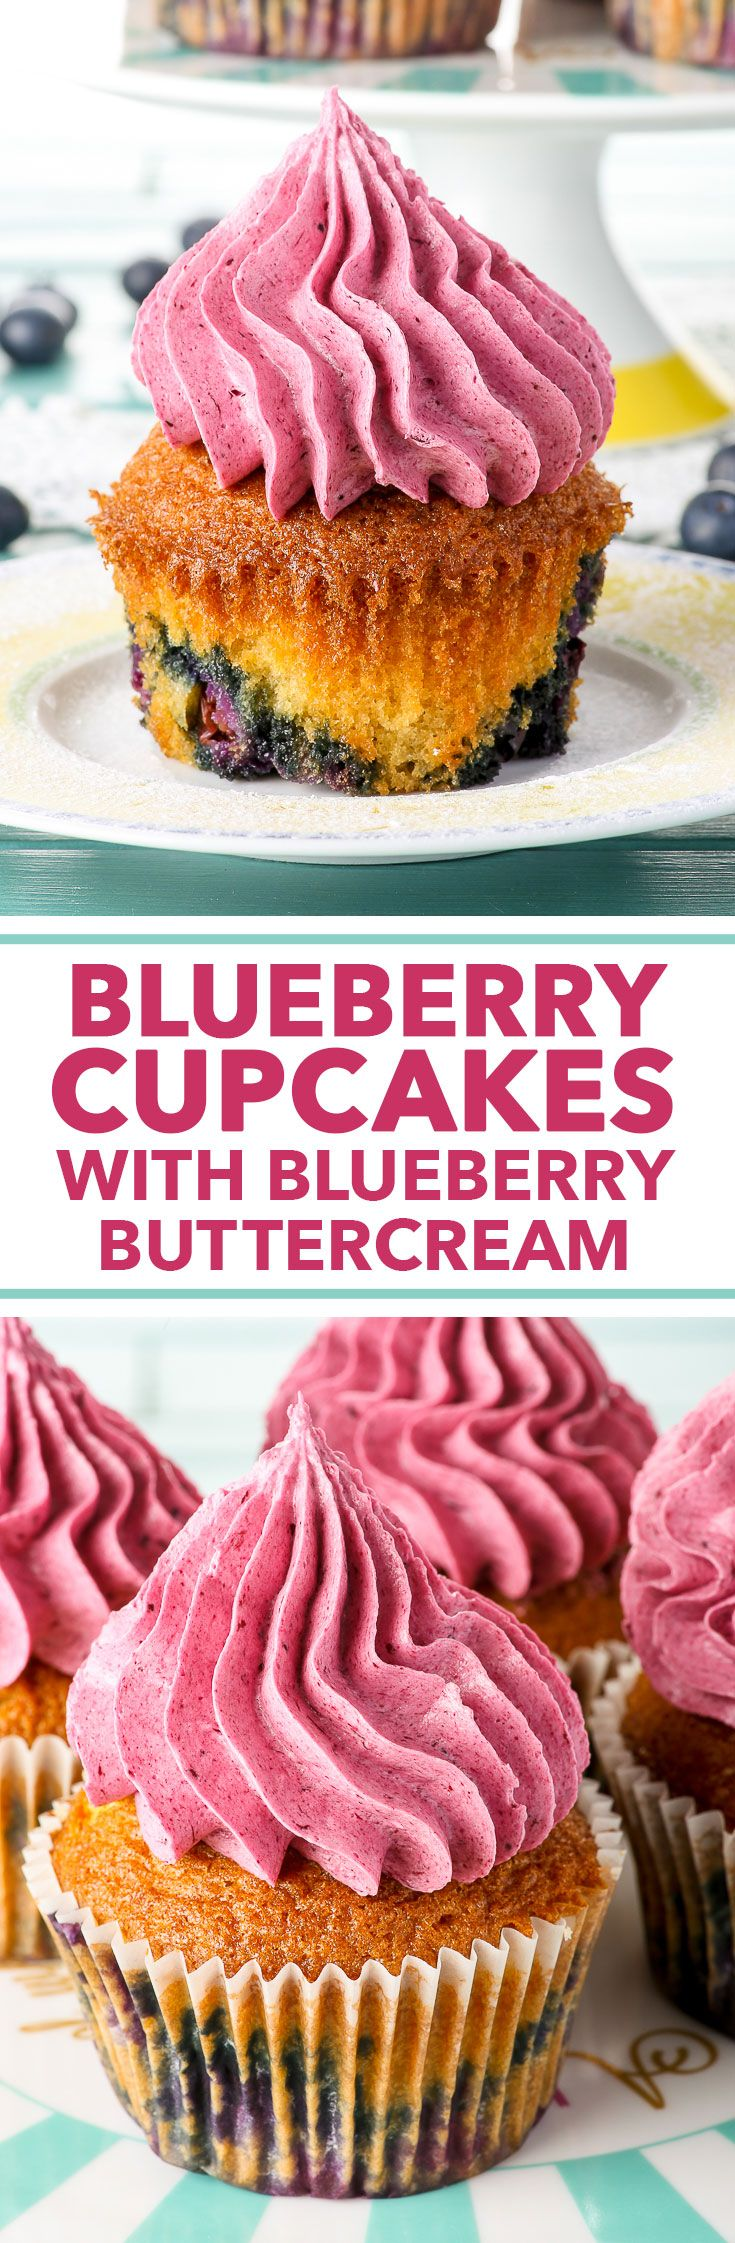 Blueberry Cupcakes with Blueberry Buttercream {soy & nut free, gluten free option} - These amazing blueberry cupcakes with blueberry buttercream are guaranteed to impress. The recipe is quick and easy, but the results are mind-blowing! All you need is half an hour and minimal piping skills. The cupcakes have the perfect ratio of creamy buttercream to fluffy cupcake, and the blueberry flavour comes through in every bite. Gluten free option, as well!